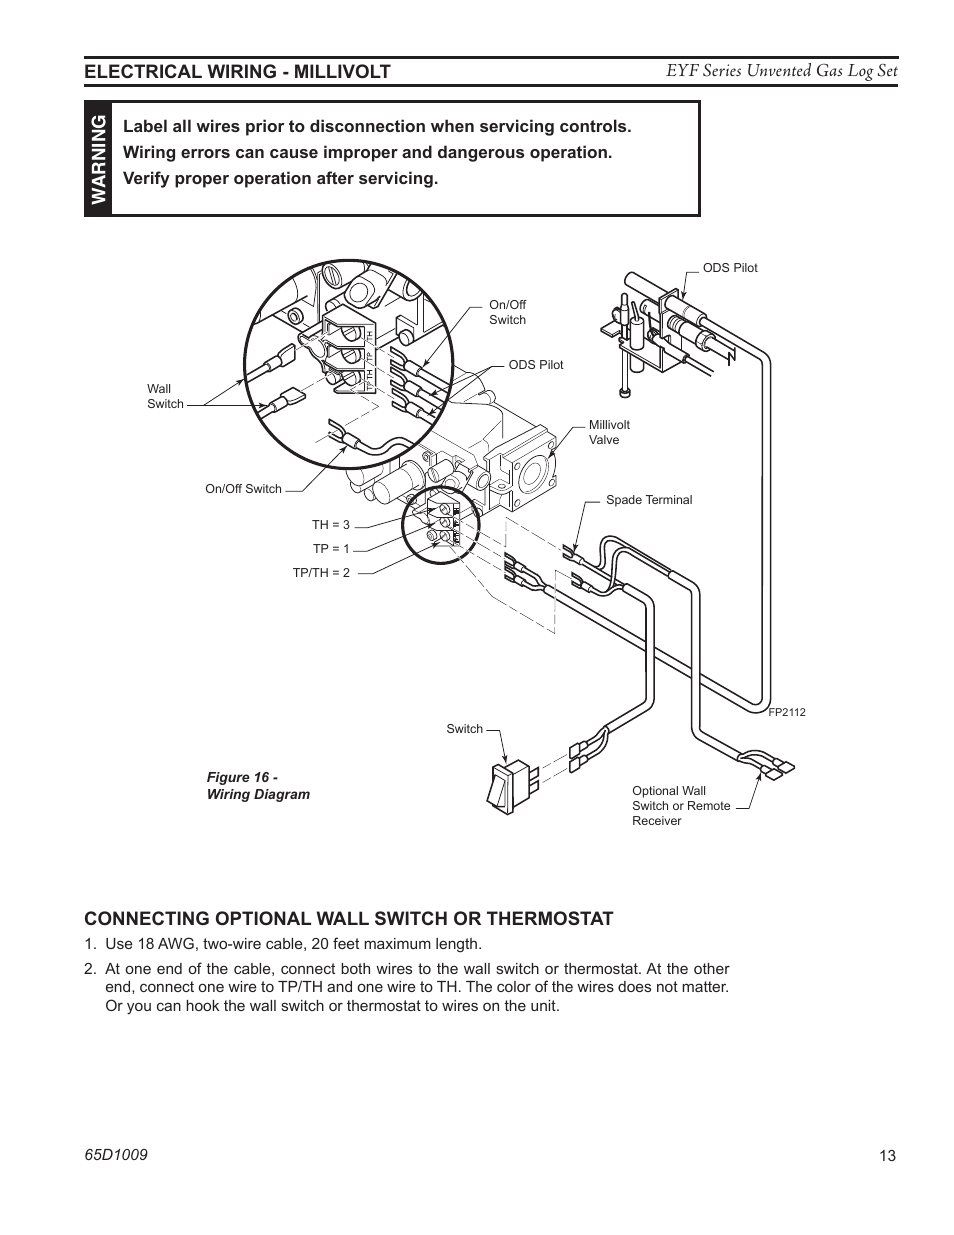 honda pilot wiring ods pilot wiring diagram connecting optional wall switch or thermostat | monessen ... #15